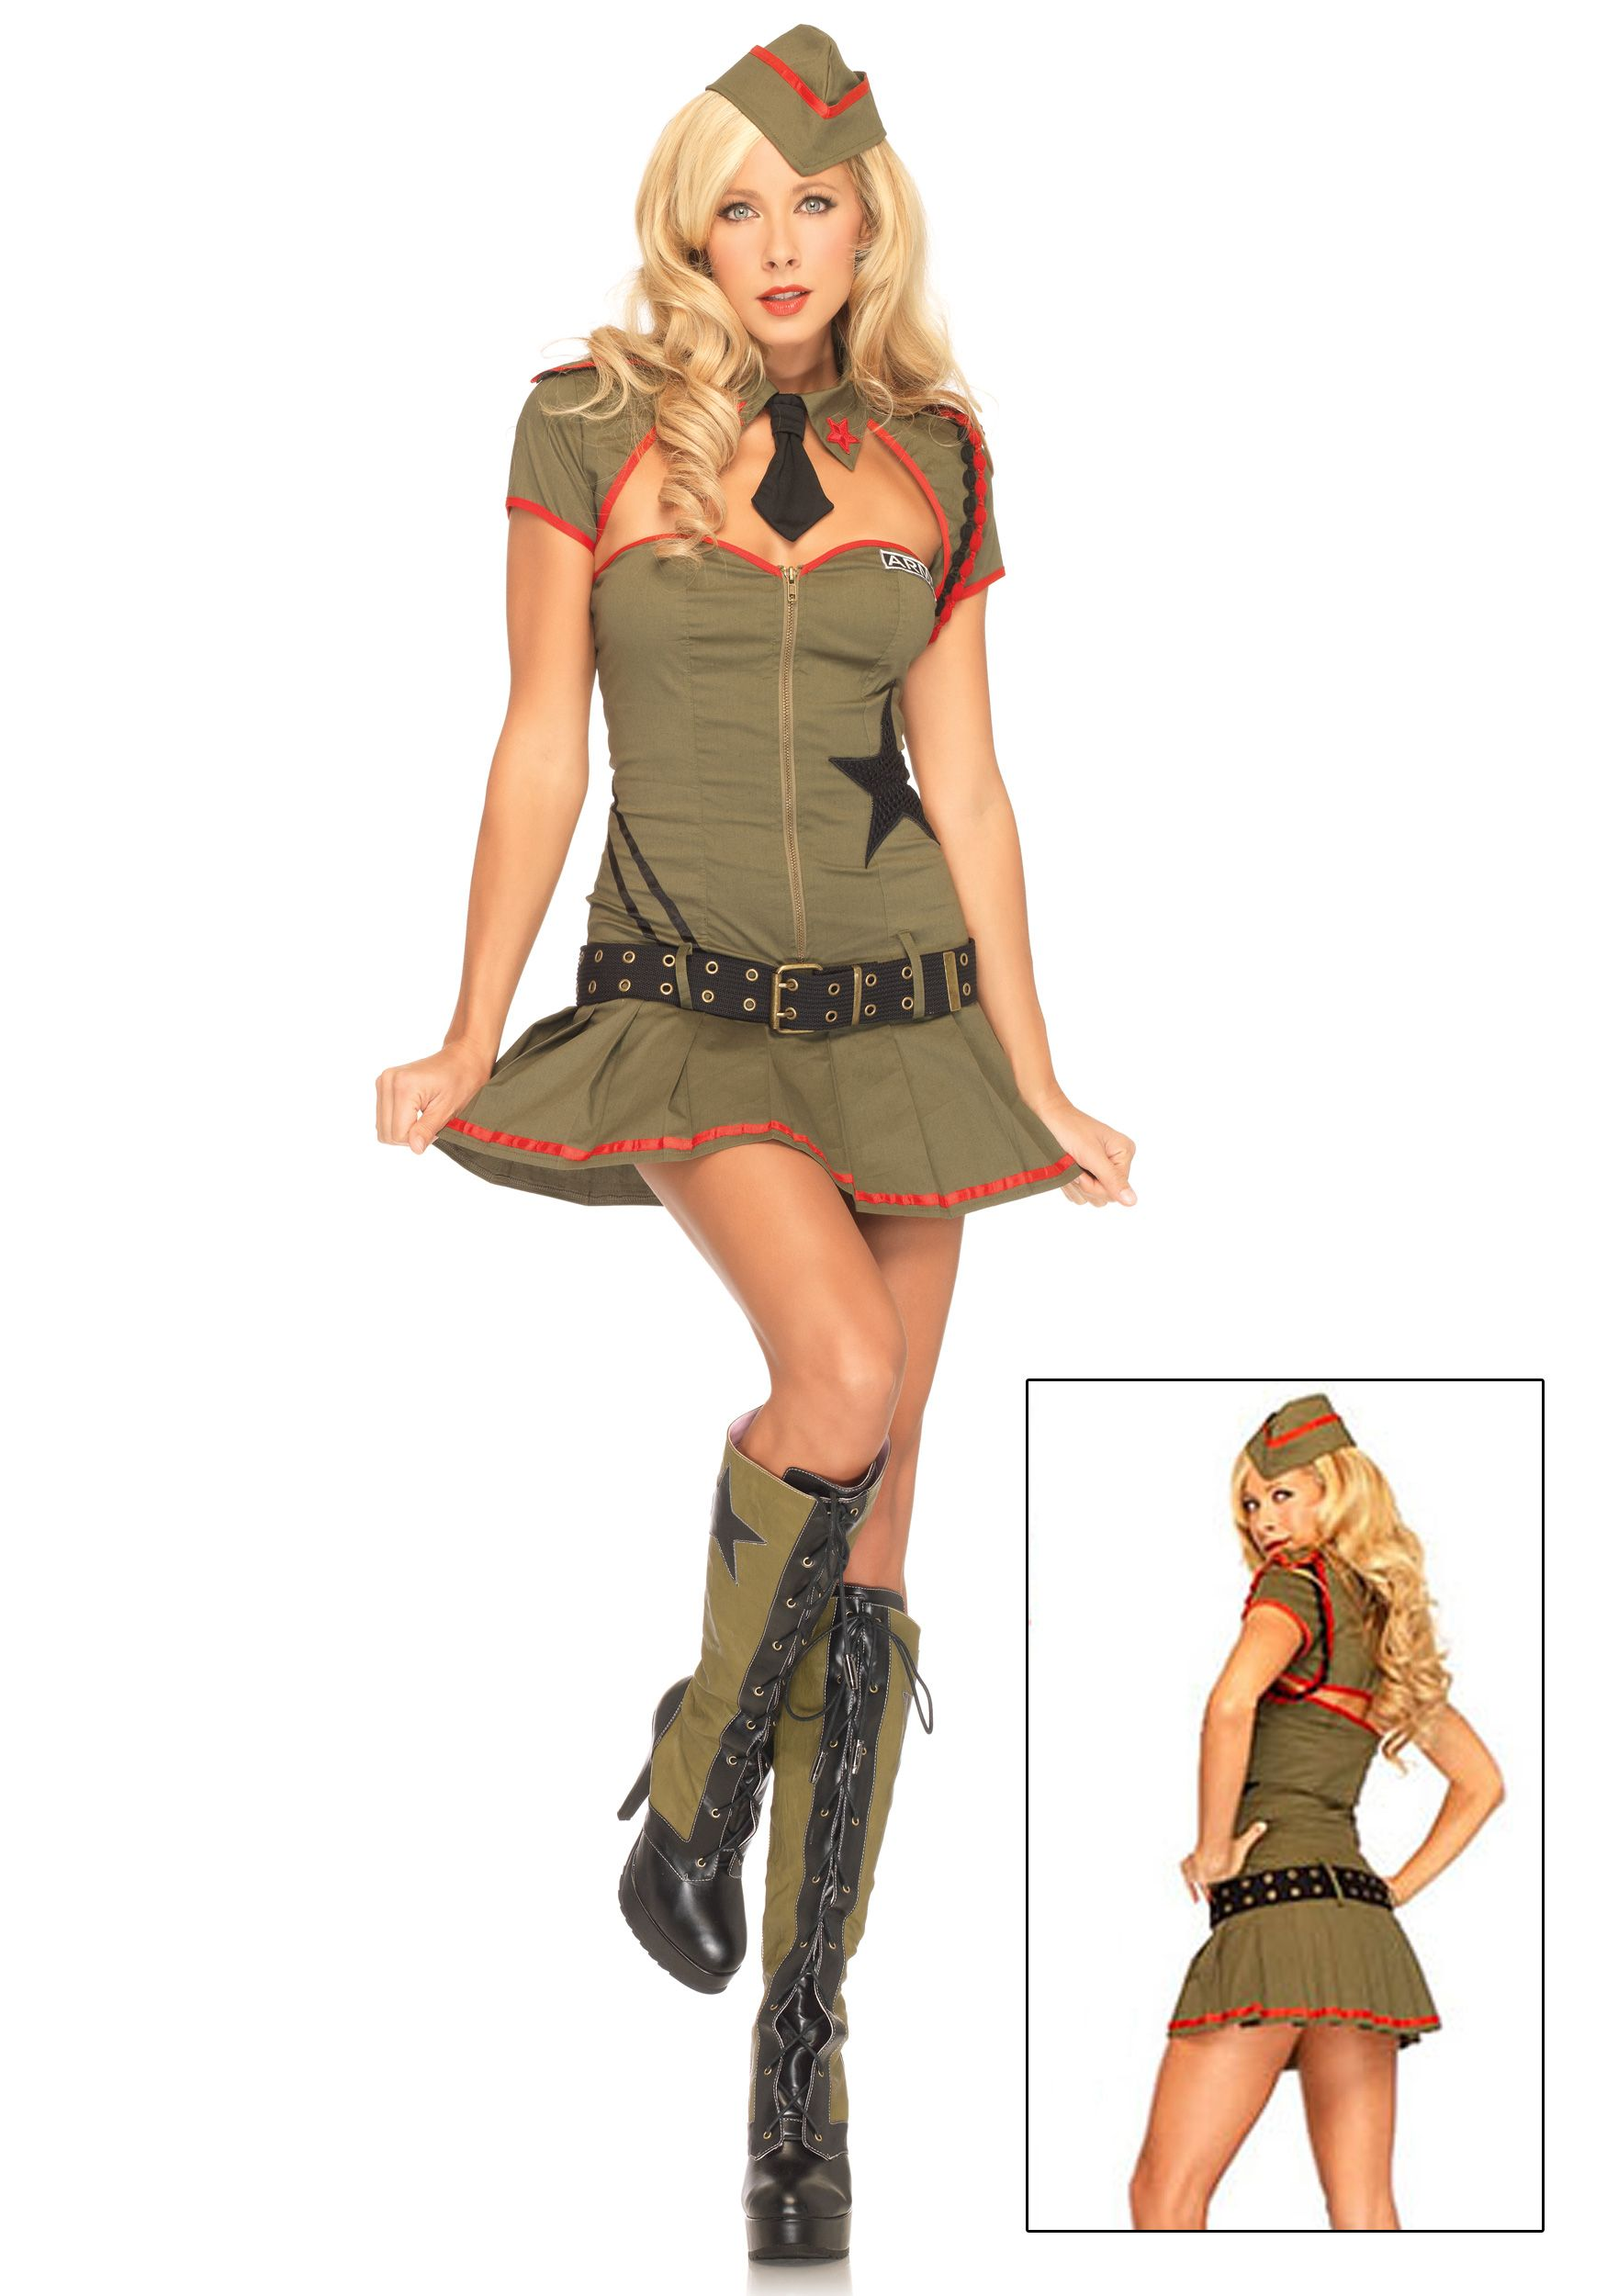 5817181e4916a Womens Army Dress | Just Stuff | Army costume, Army halloween ...